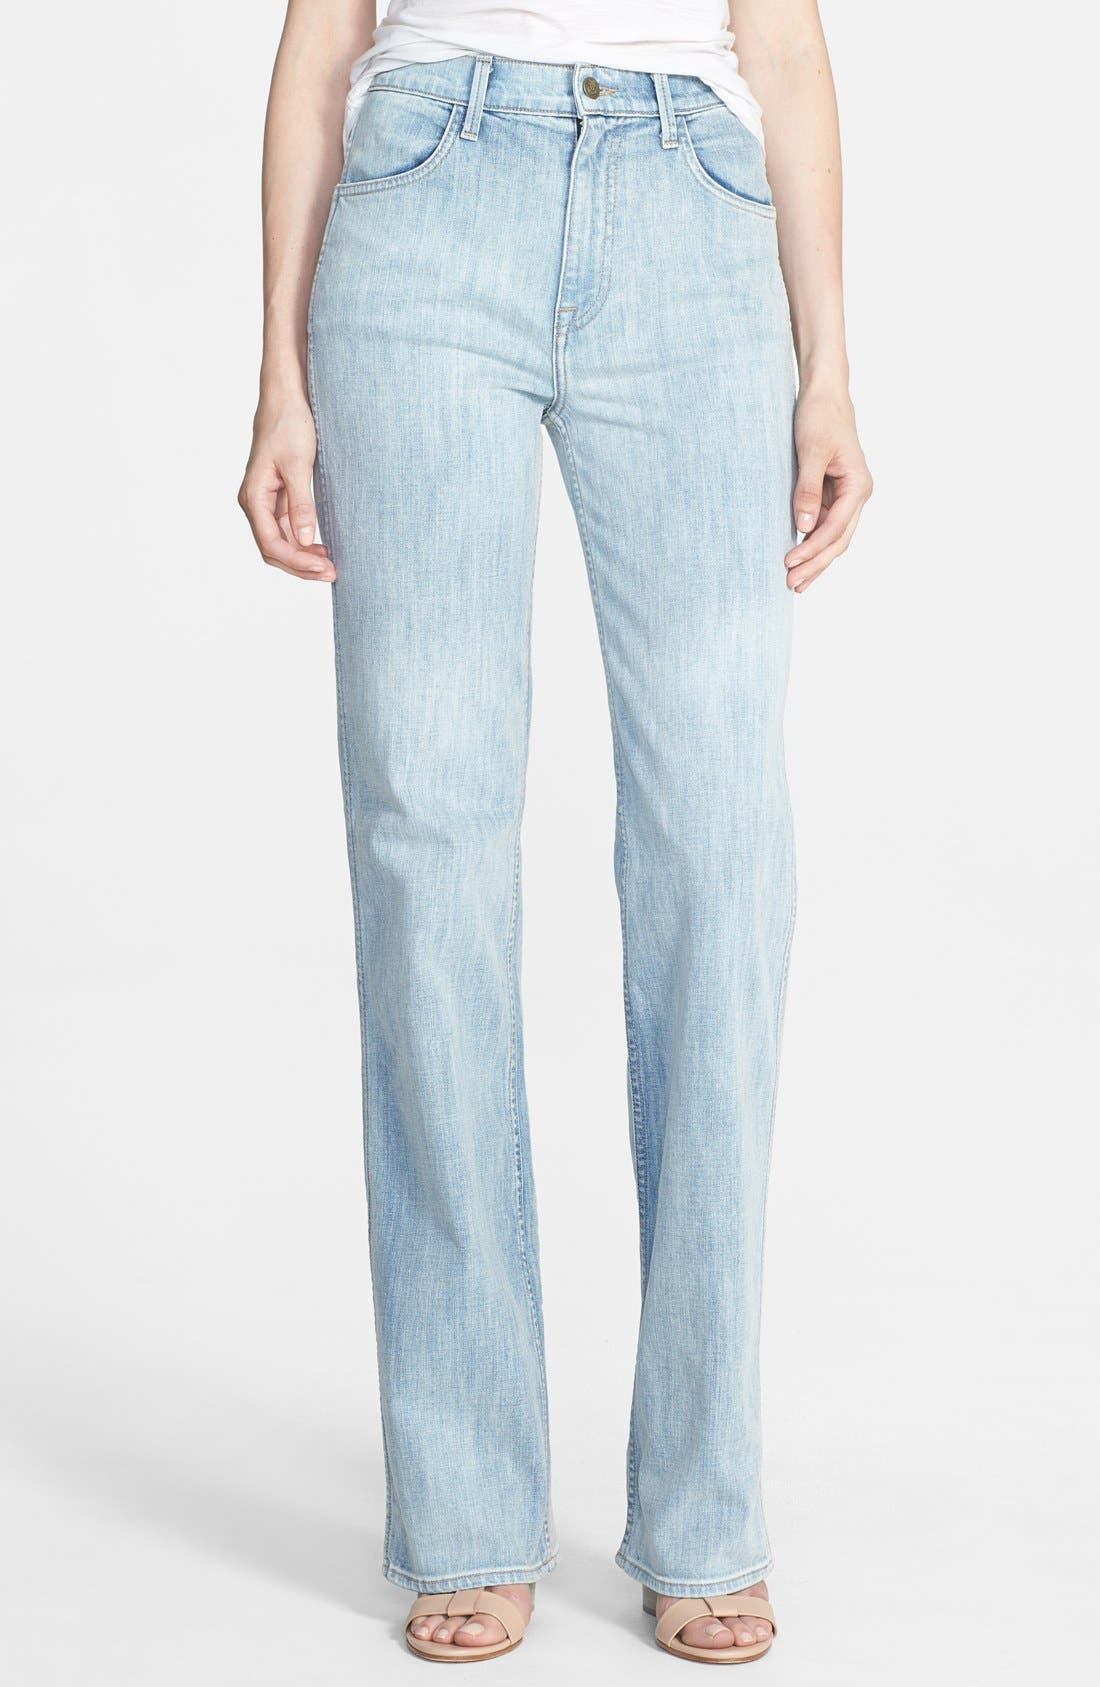 Alternate Image 1 Selected - Wildfox 'Luca' High Rise Straight Leg Jeans (Faithful)